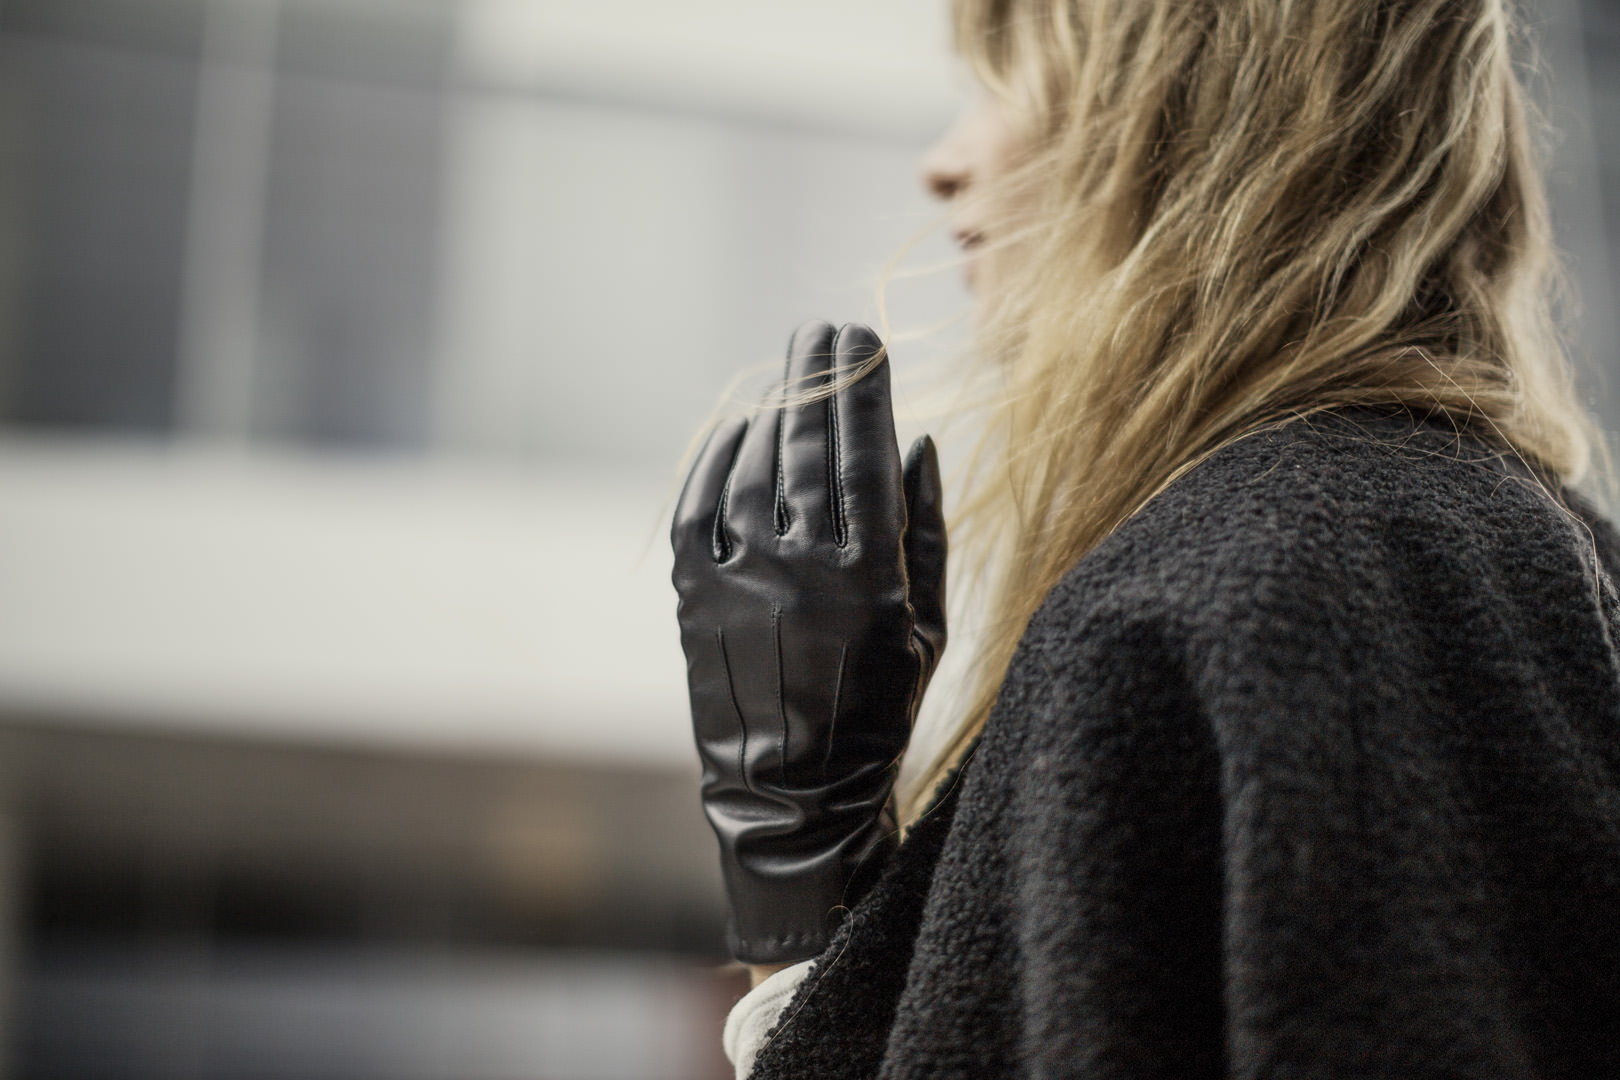 NapoGloves_winter_campaign_2015_02